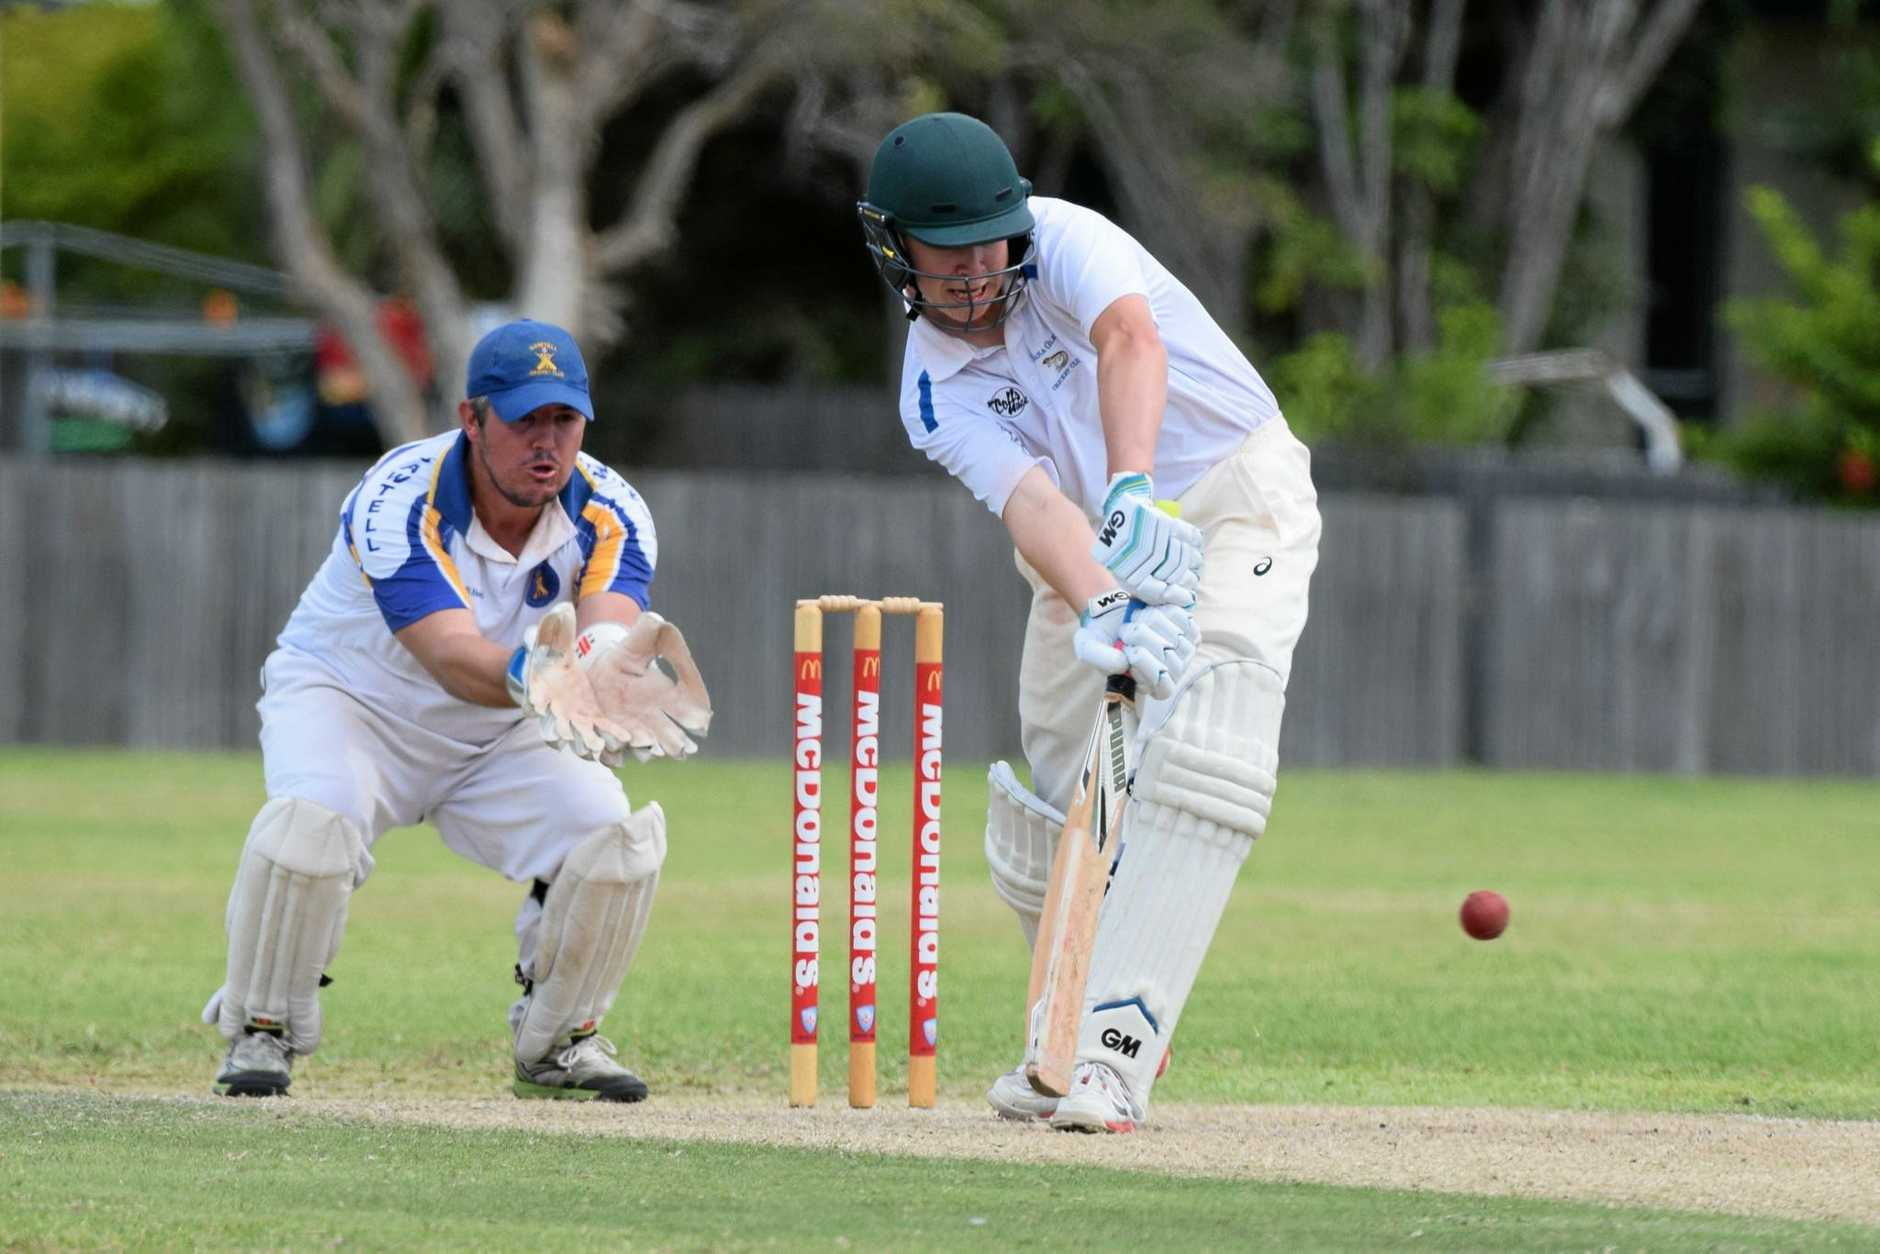 TOP KNOCK: Brodie Bartlett on his way to a century for Nana Glen.